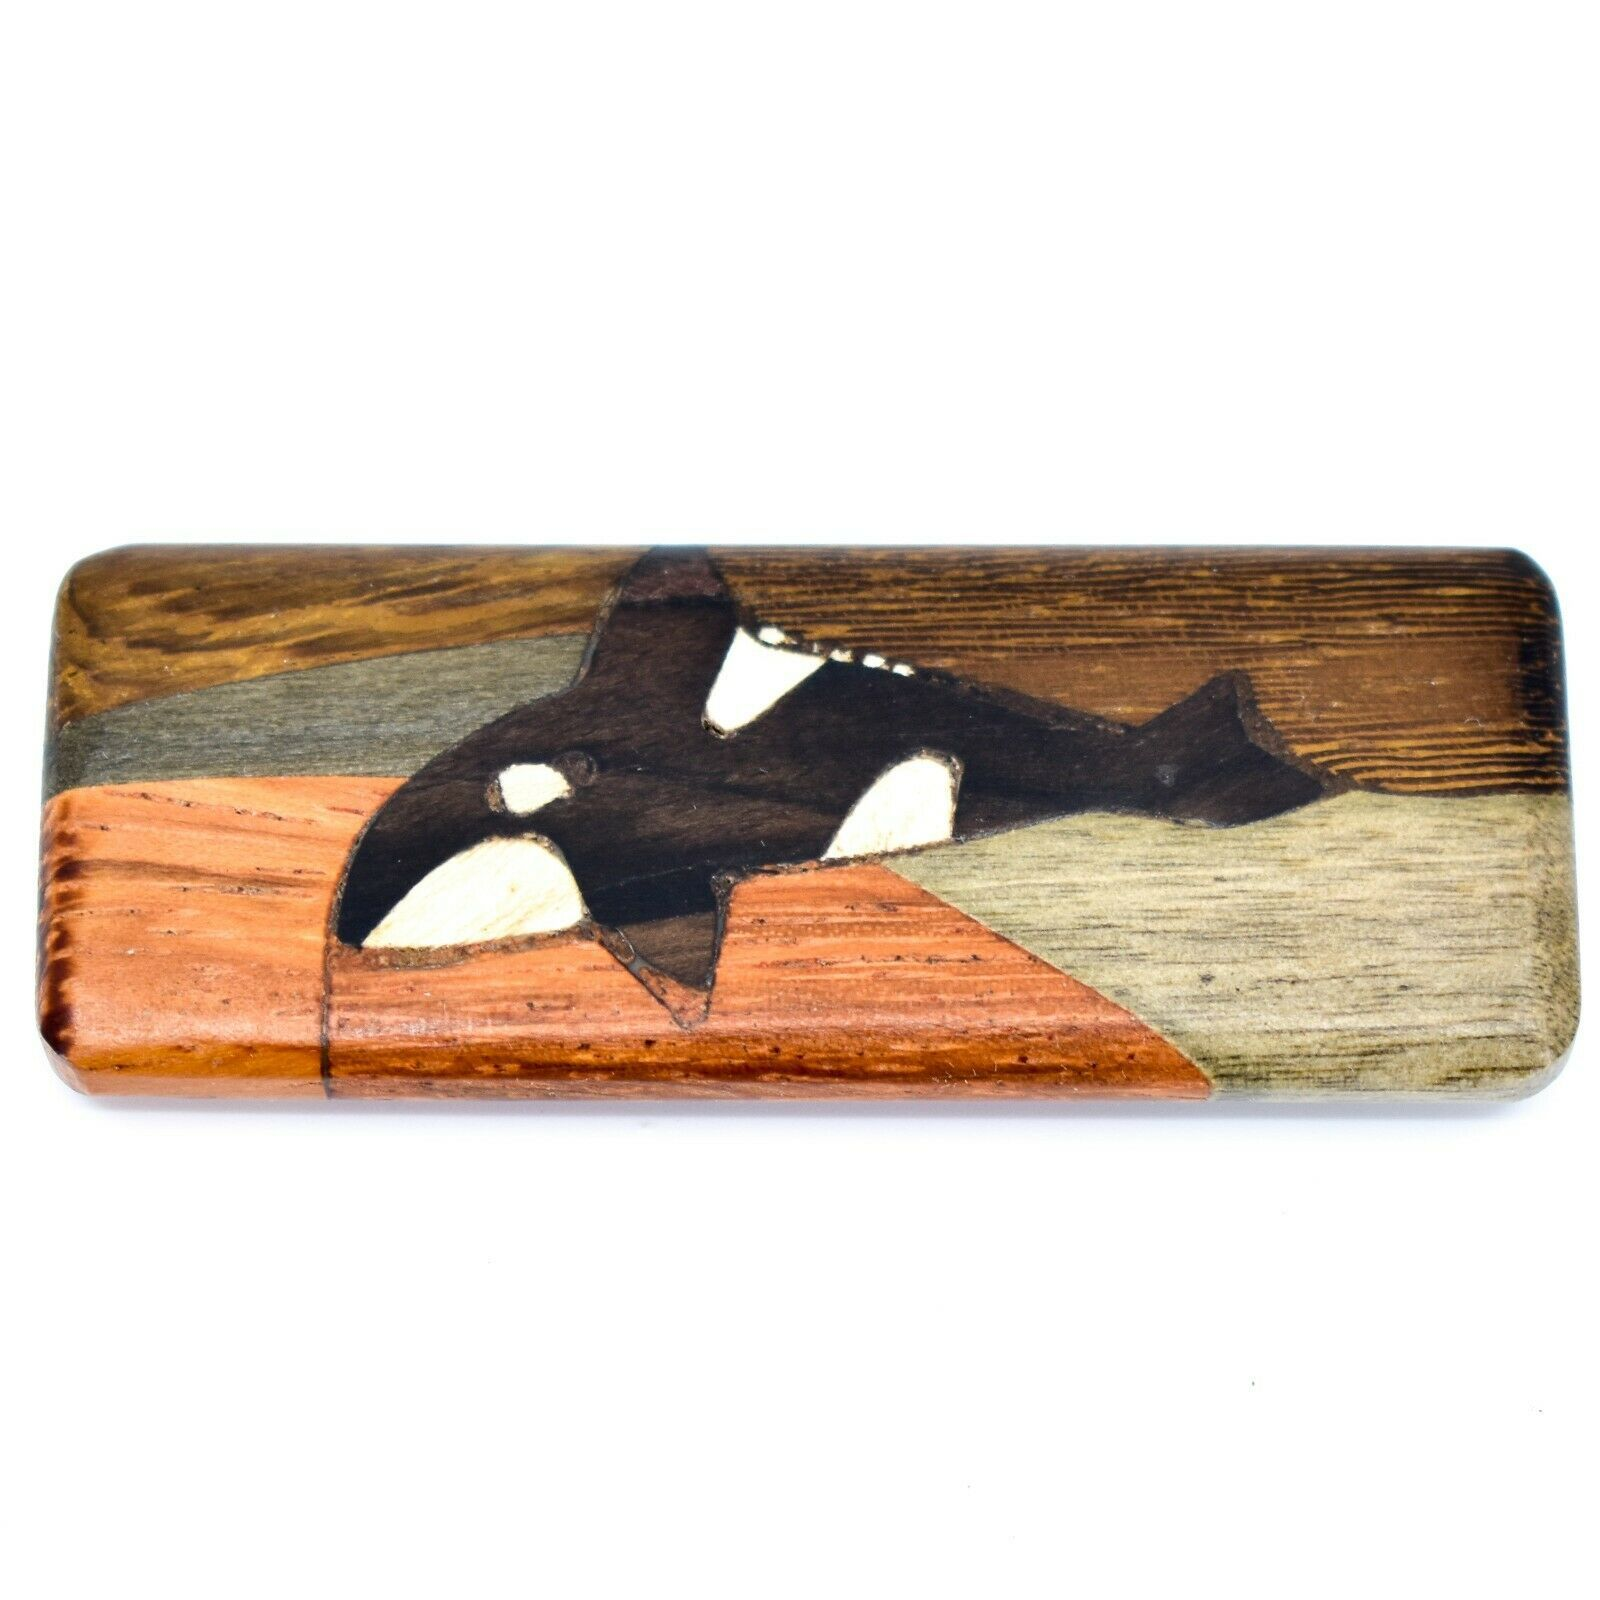 Northwoods Wooden Parquetry Rustic Orca Whale Design Tile Magnet